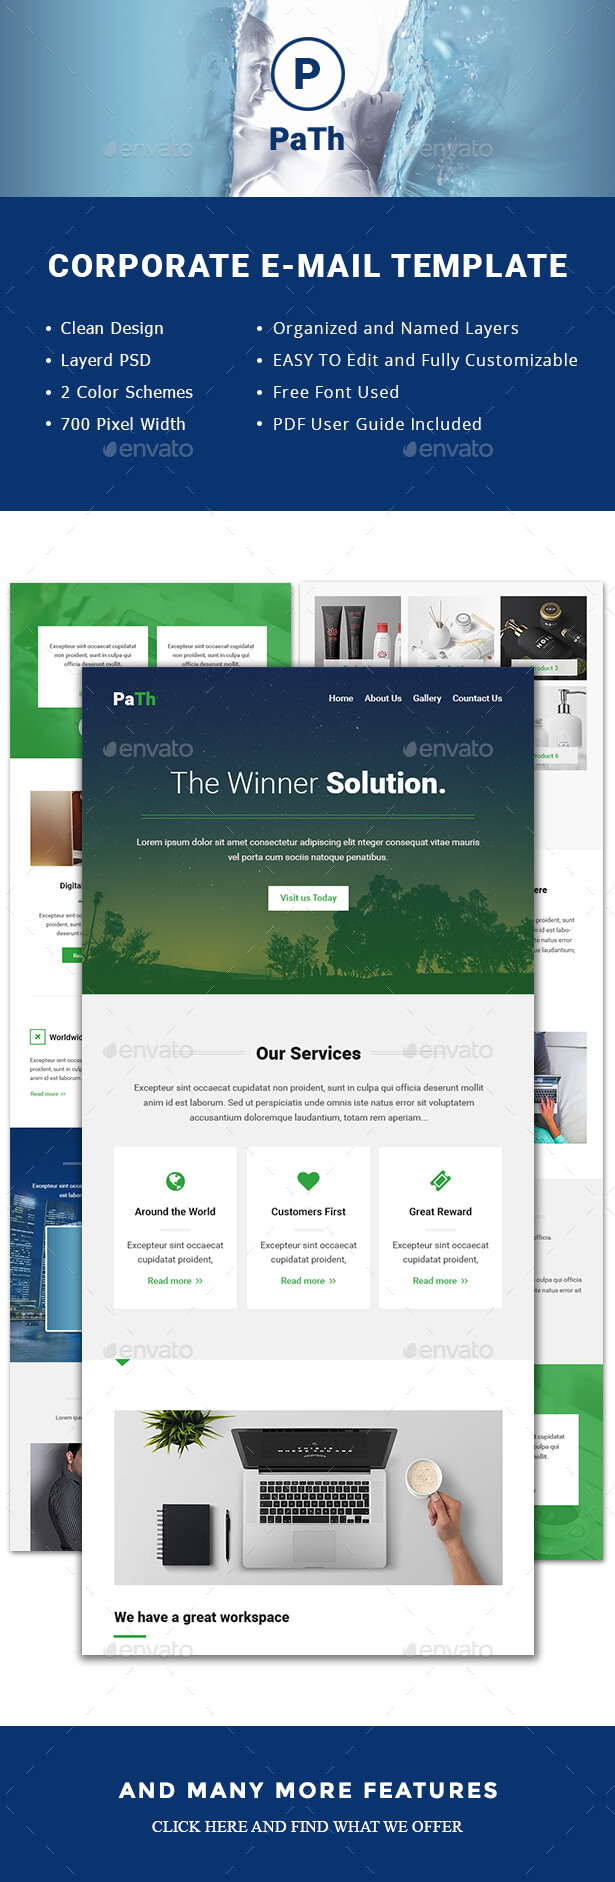 Path Email Template (1)